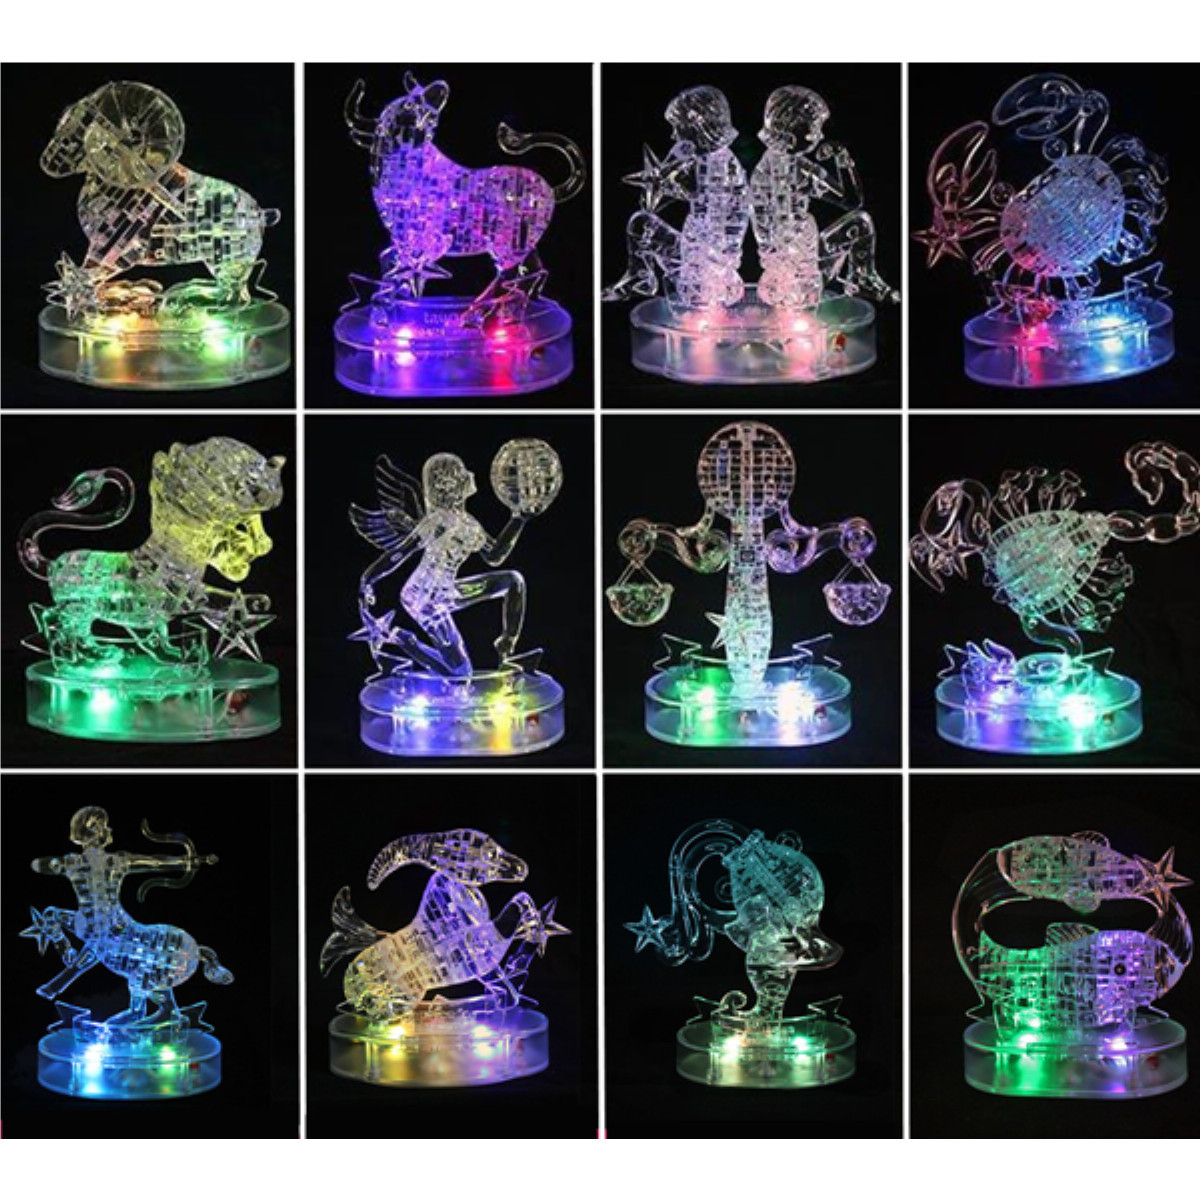 12 Constellations Crystal Puzzles 3D Jigsaw Model DIY Toy Xmas Gift от Banggood INT